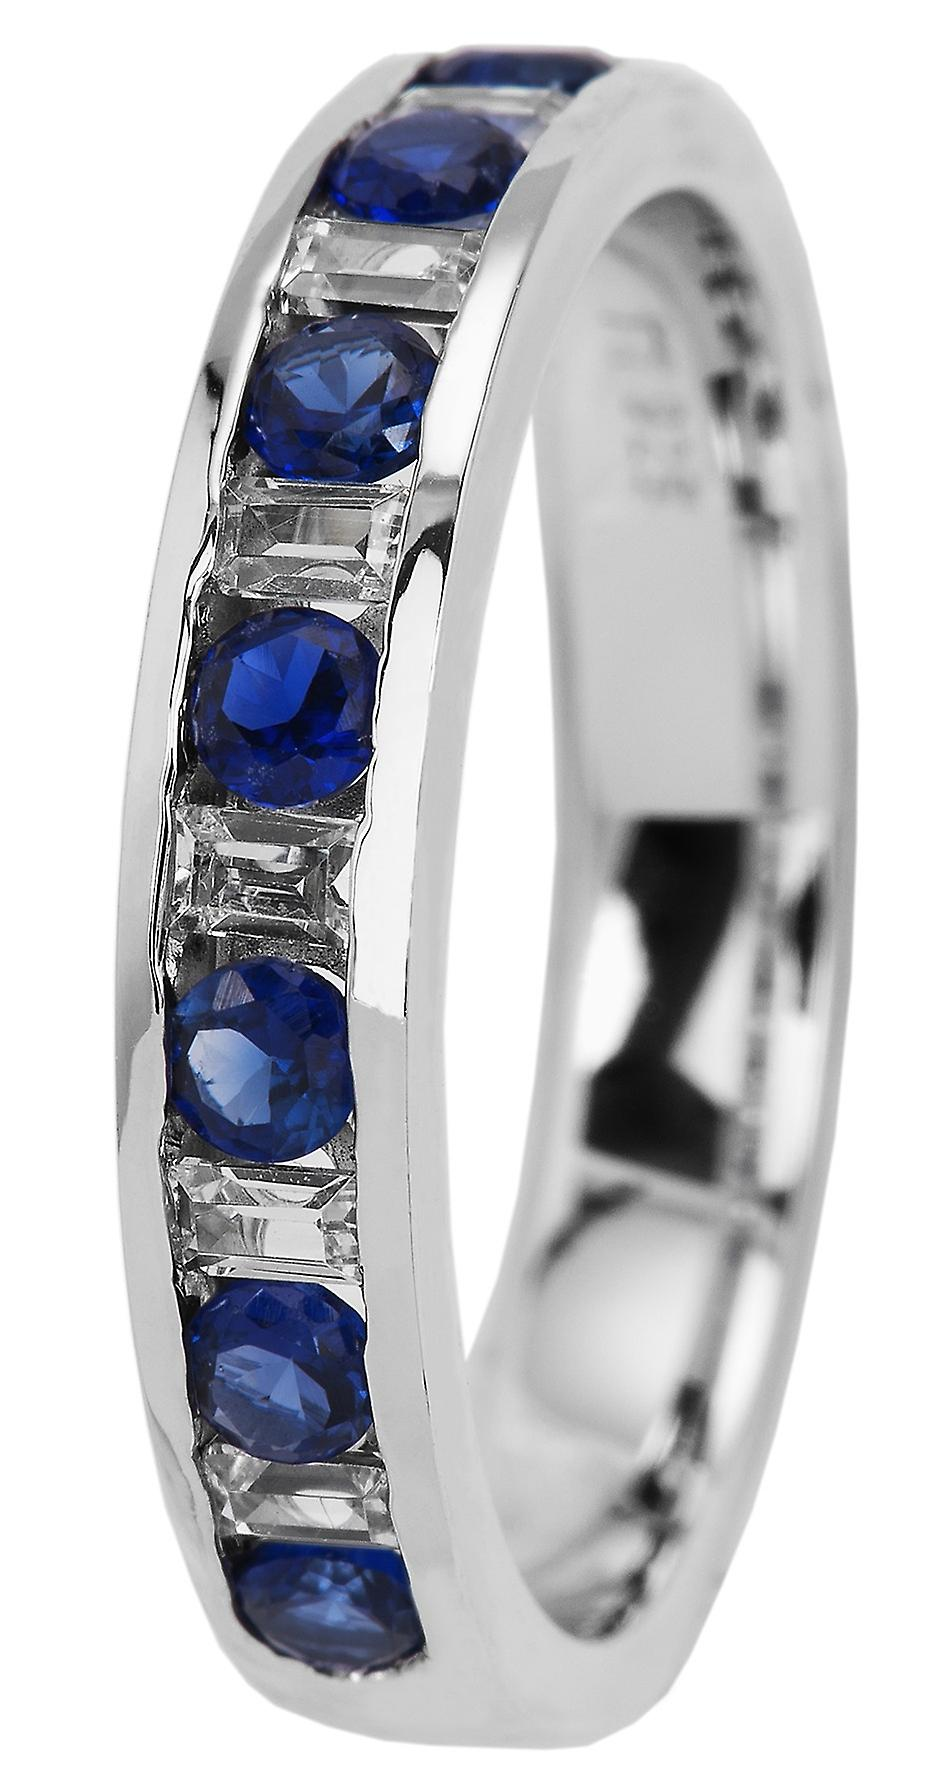 Burgmeister women's ring JBM2015-111, 925 sterling silver rhodanized, blue + white zirconia